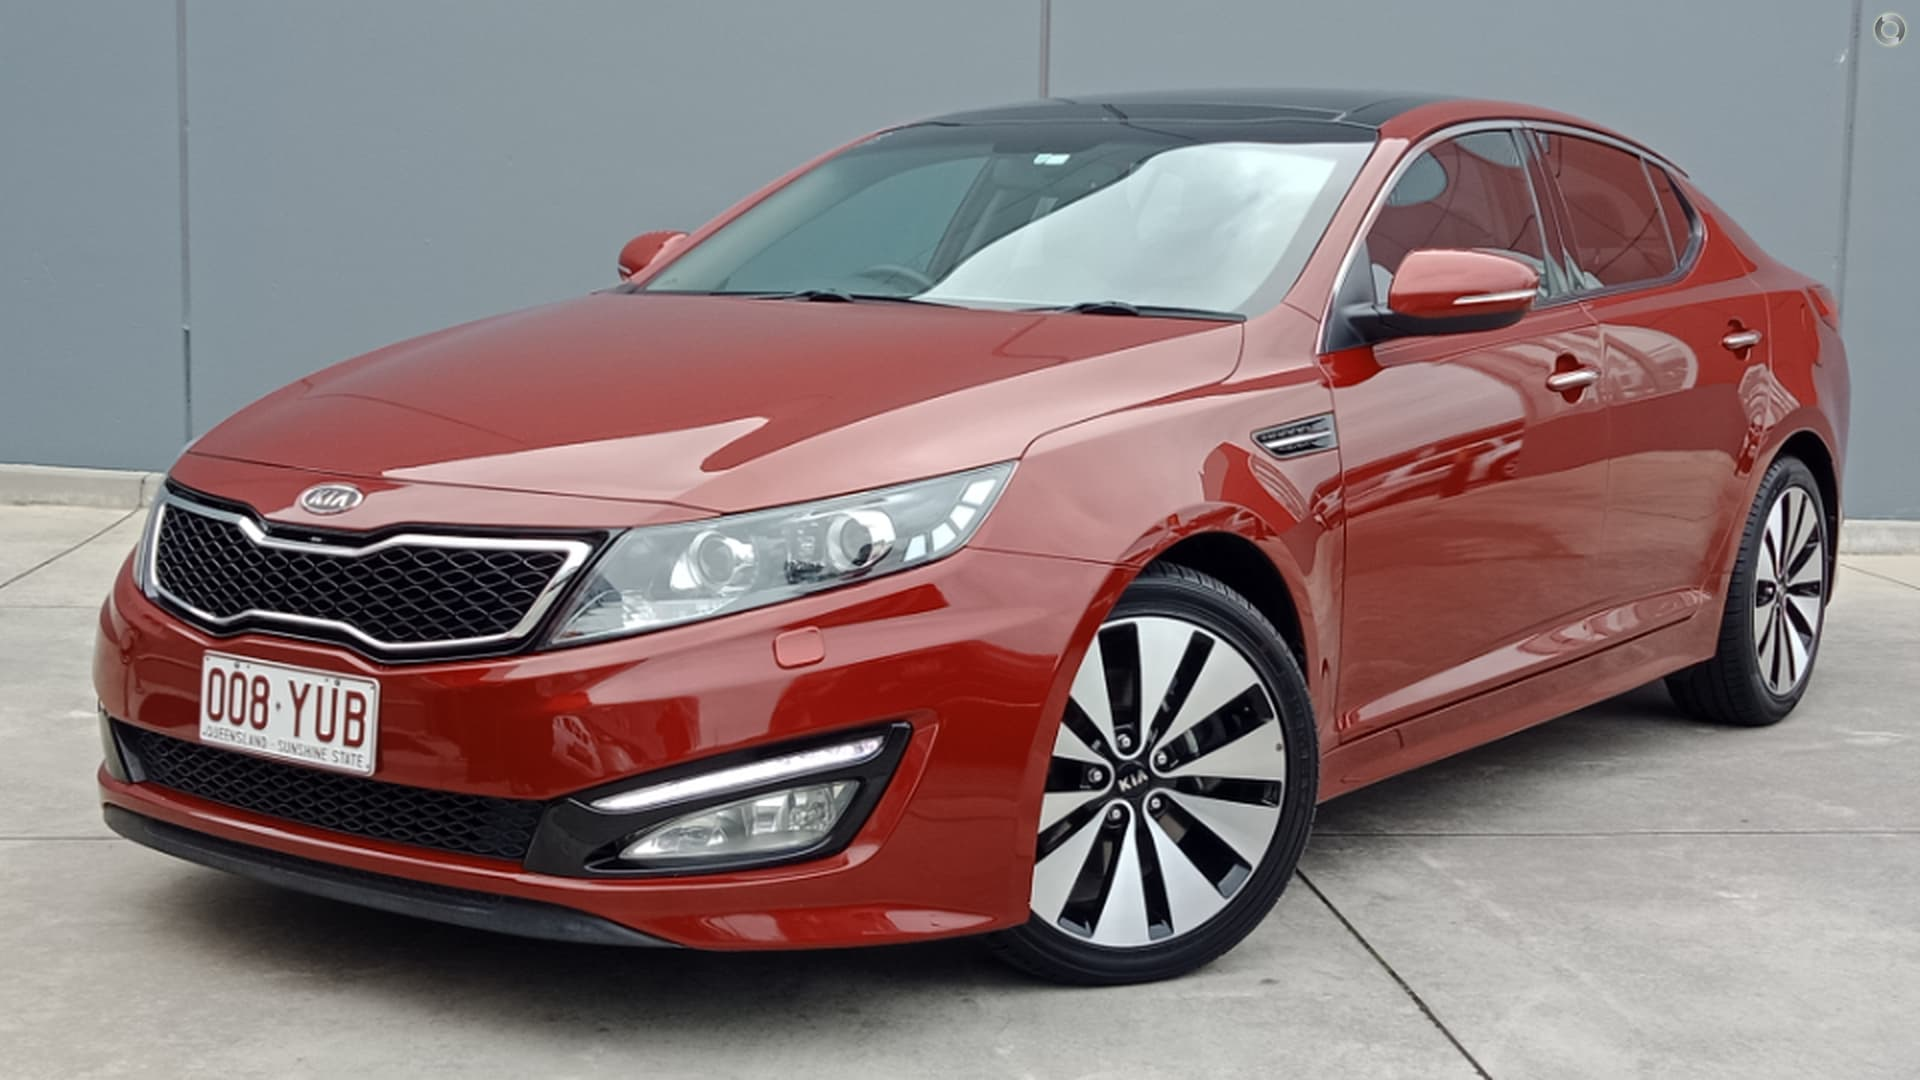 2011 Kia Optima TF